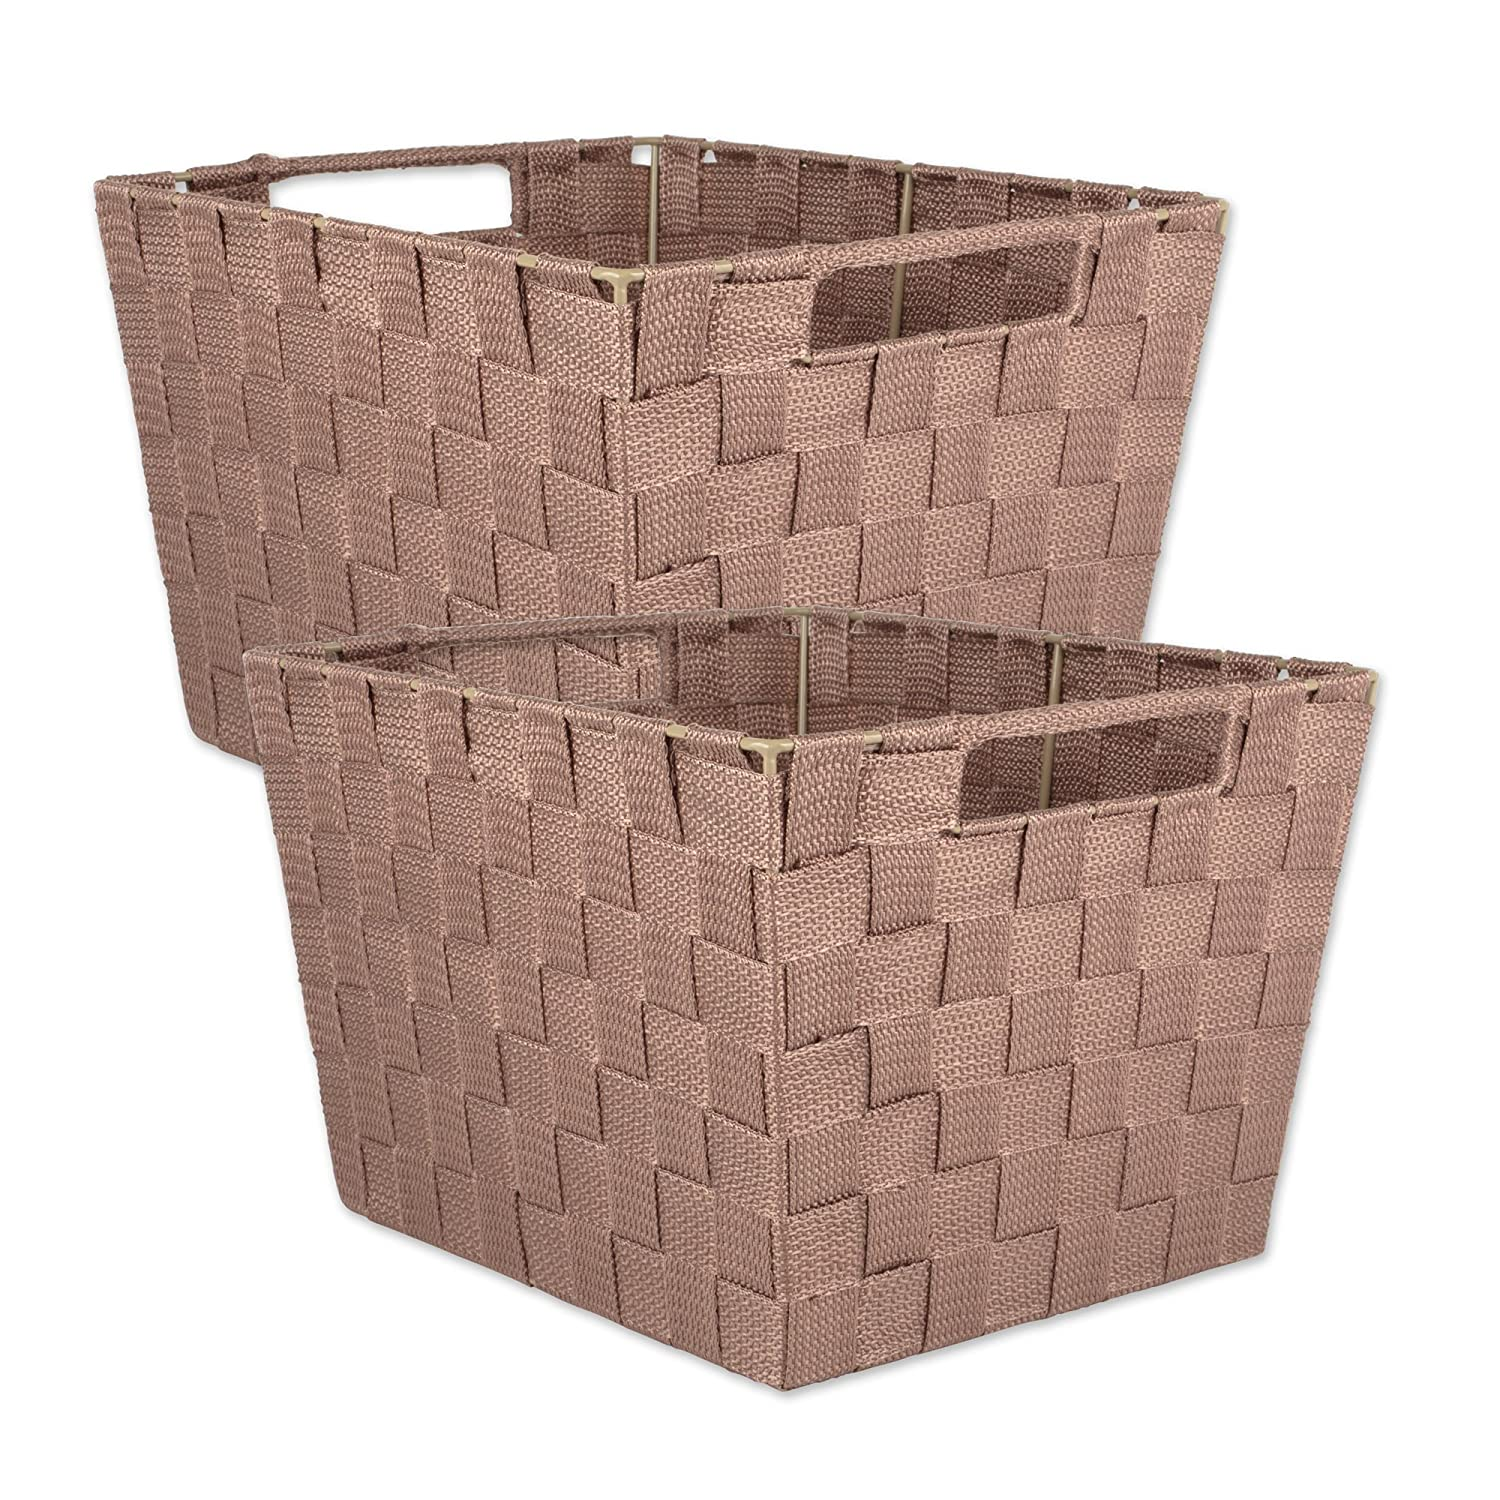 DII Durable Trapezoid Woven Nylon Storage Bin or Basket for Organizing Your Home, Office, or Closets (Tray - 13x15x5') Black - Set of 2 or Closets (Tray - 13x15x5) Black - Set of 2 CAMZ37530